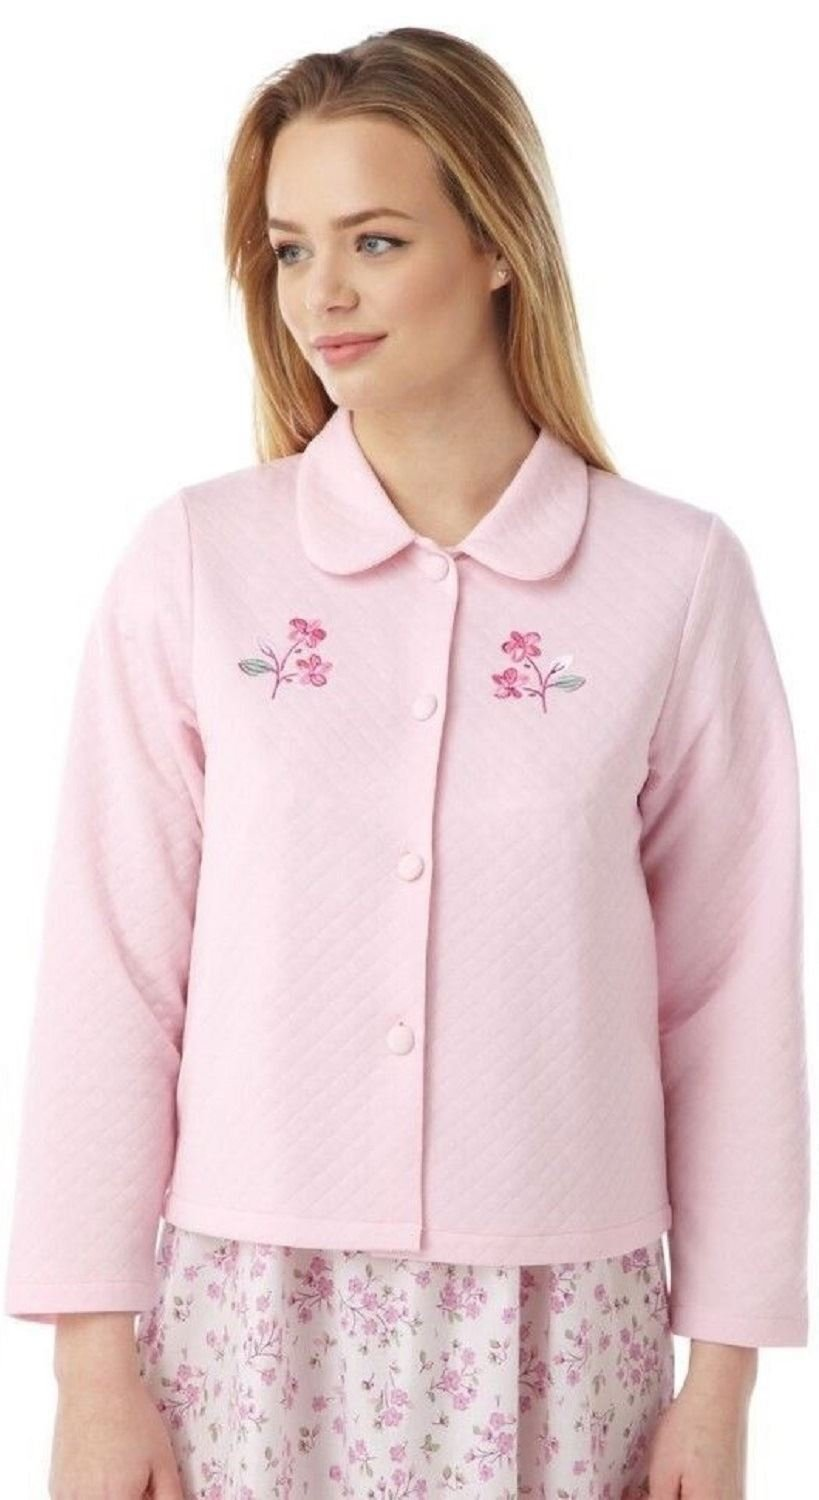 Marlon Ladies Lightweight Quilted Button Bed Jacket with Embroidery by MA08772 Pink 10-12